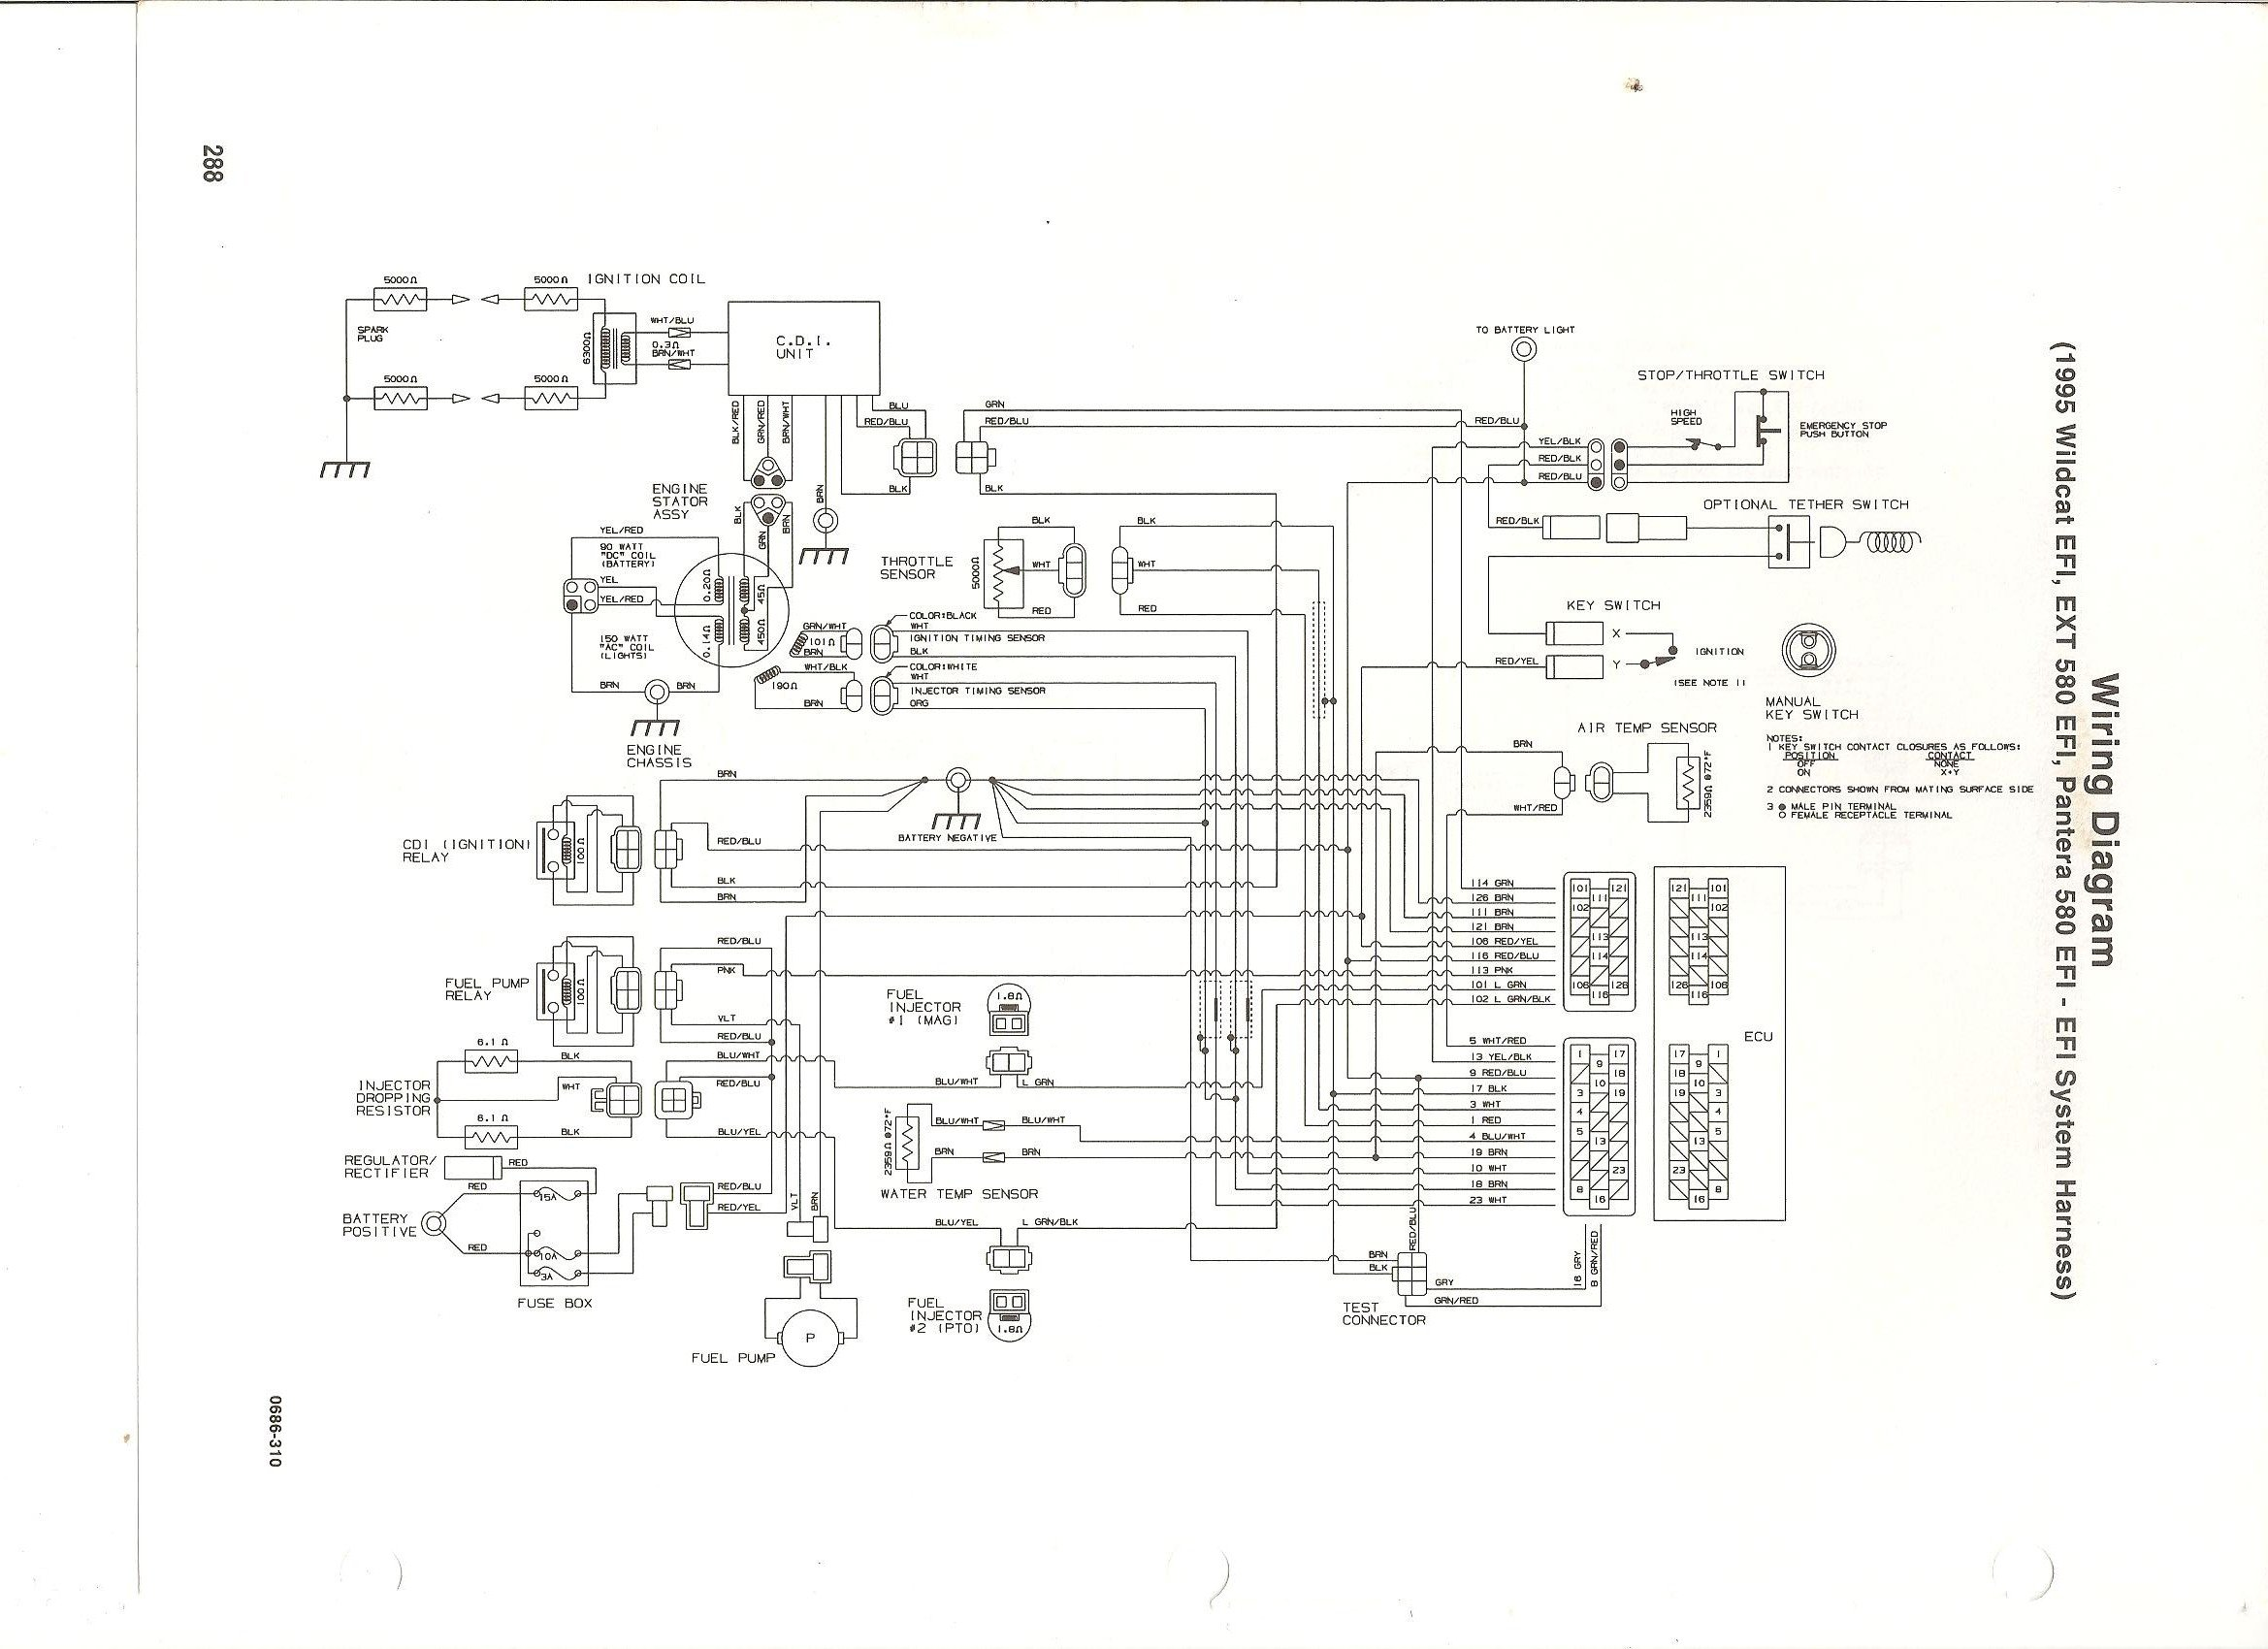 2002 550 classic wiring diagram example electrical wiring diagram u2022 rh huntervalleyhotels co Automotive Wiring Diagrams Light Switch Wiring Diagram